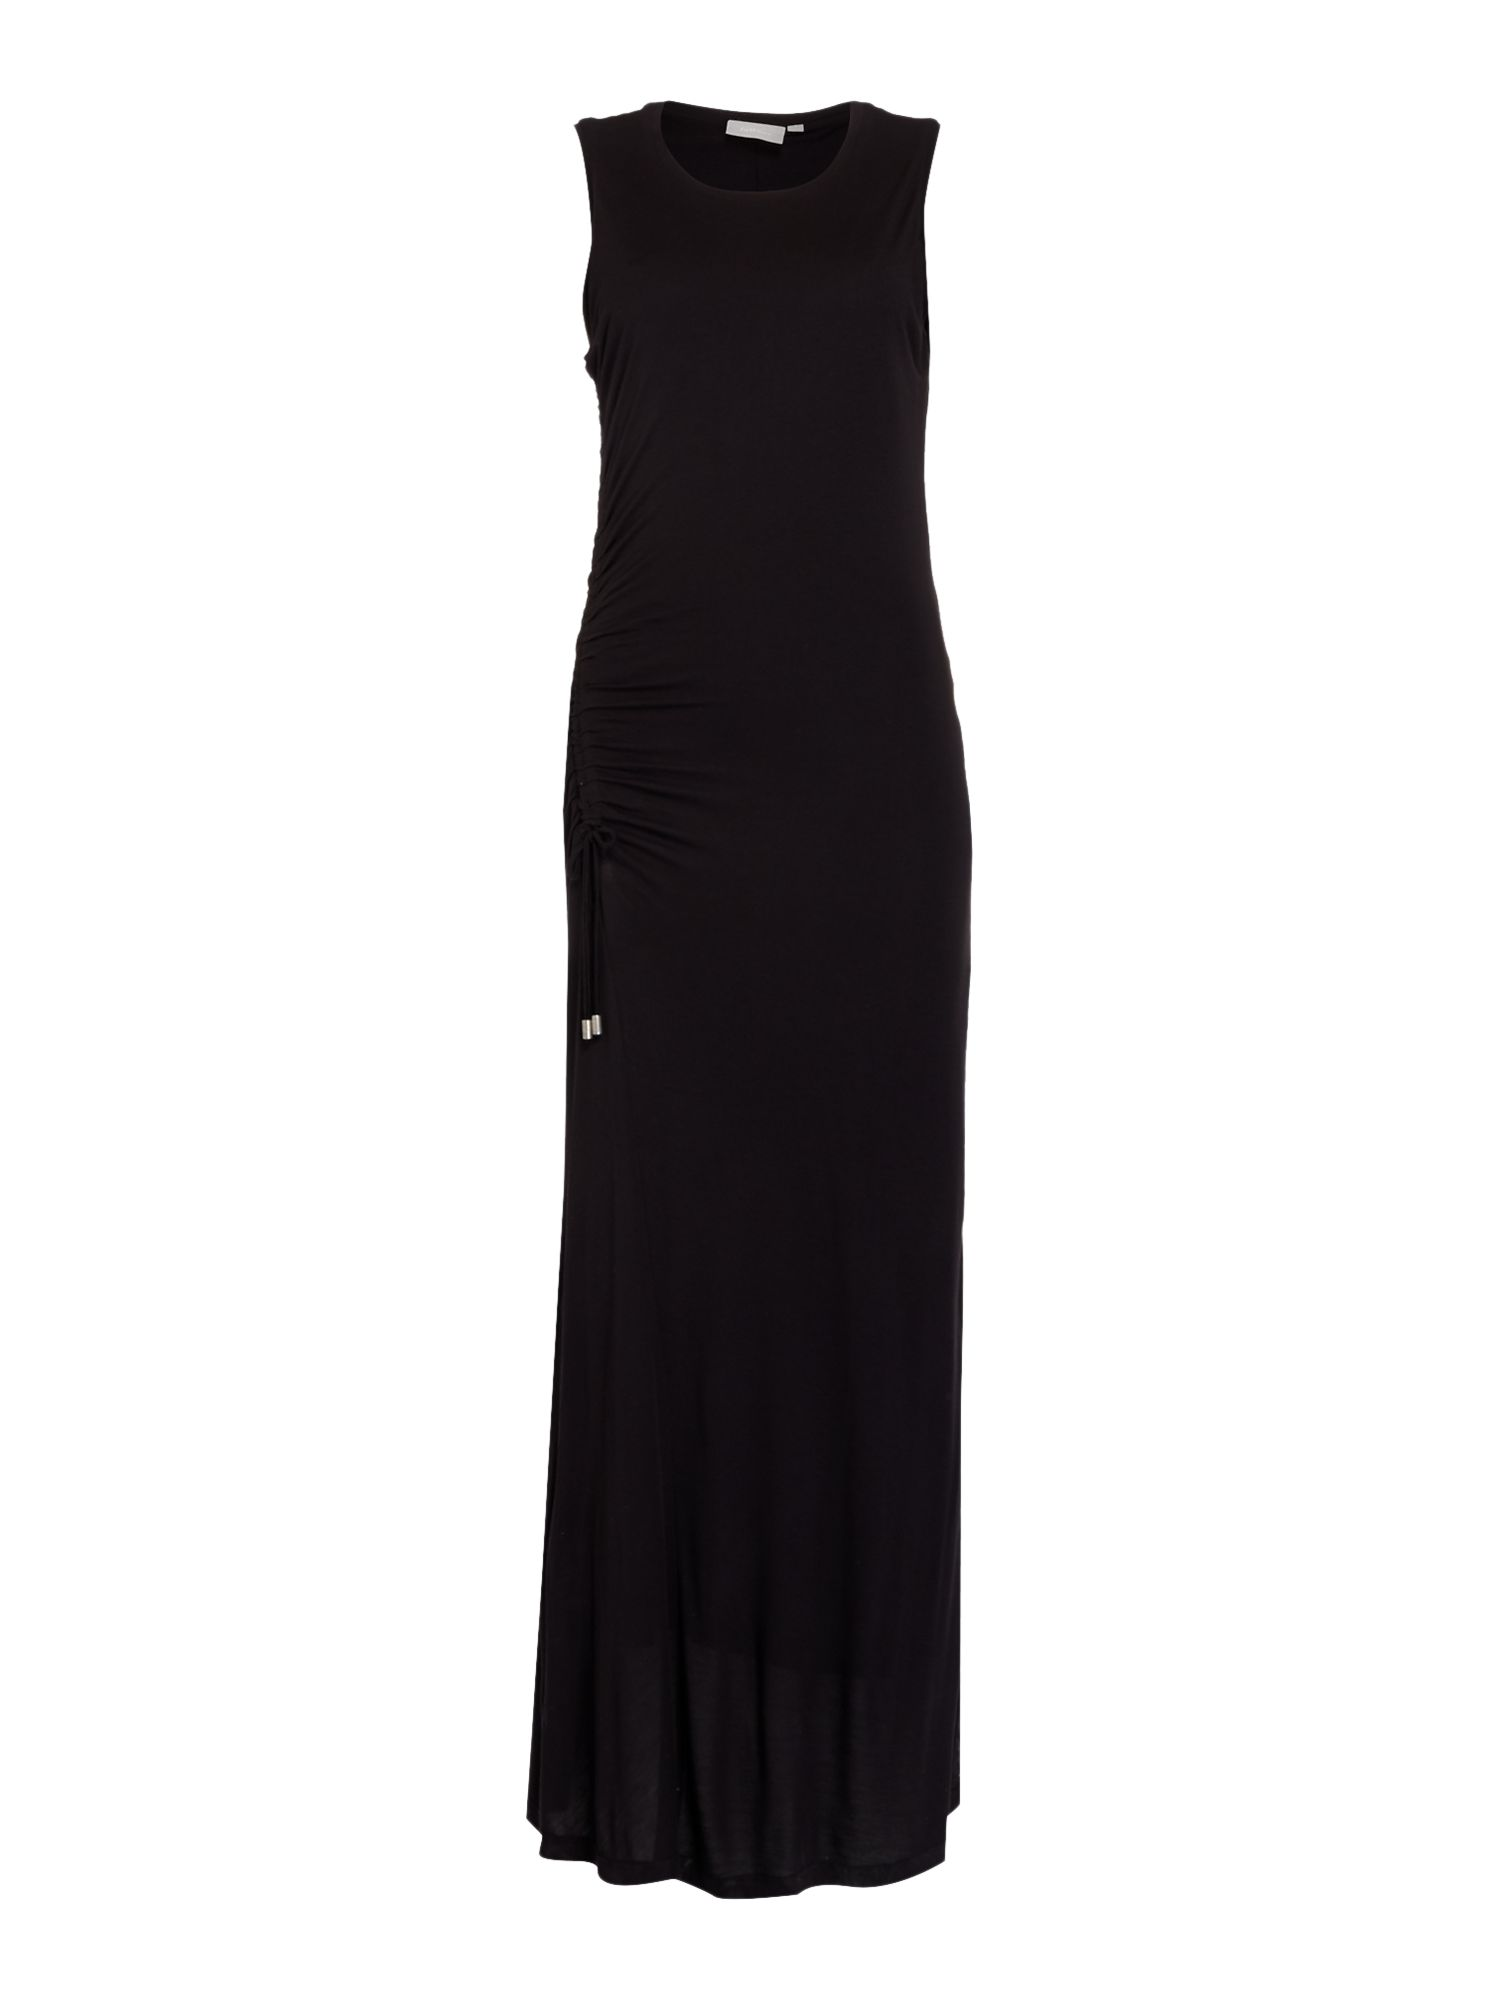 In Wear Sleeveless ruched side maxi dress, Black